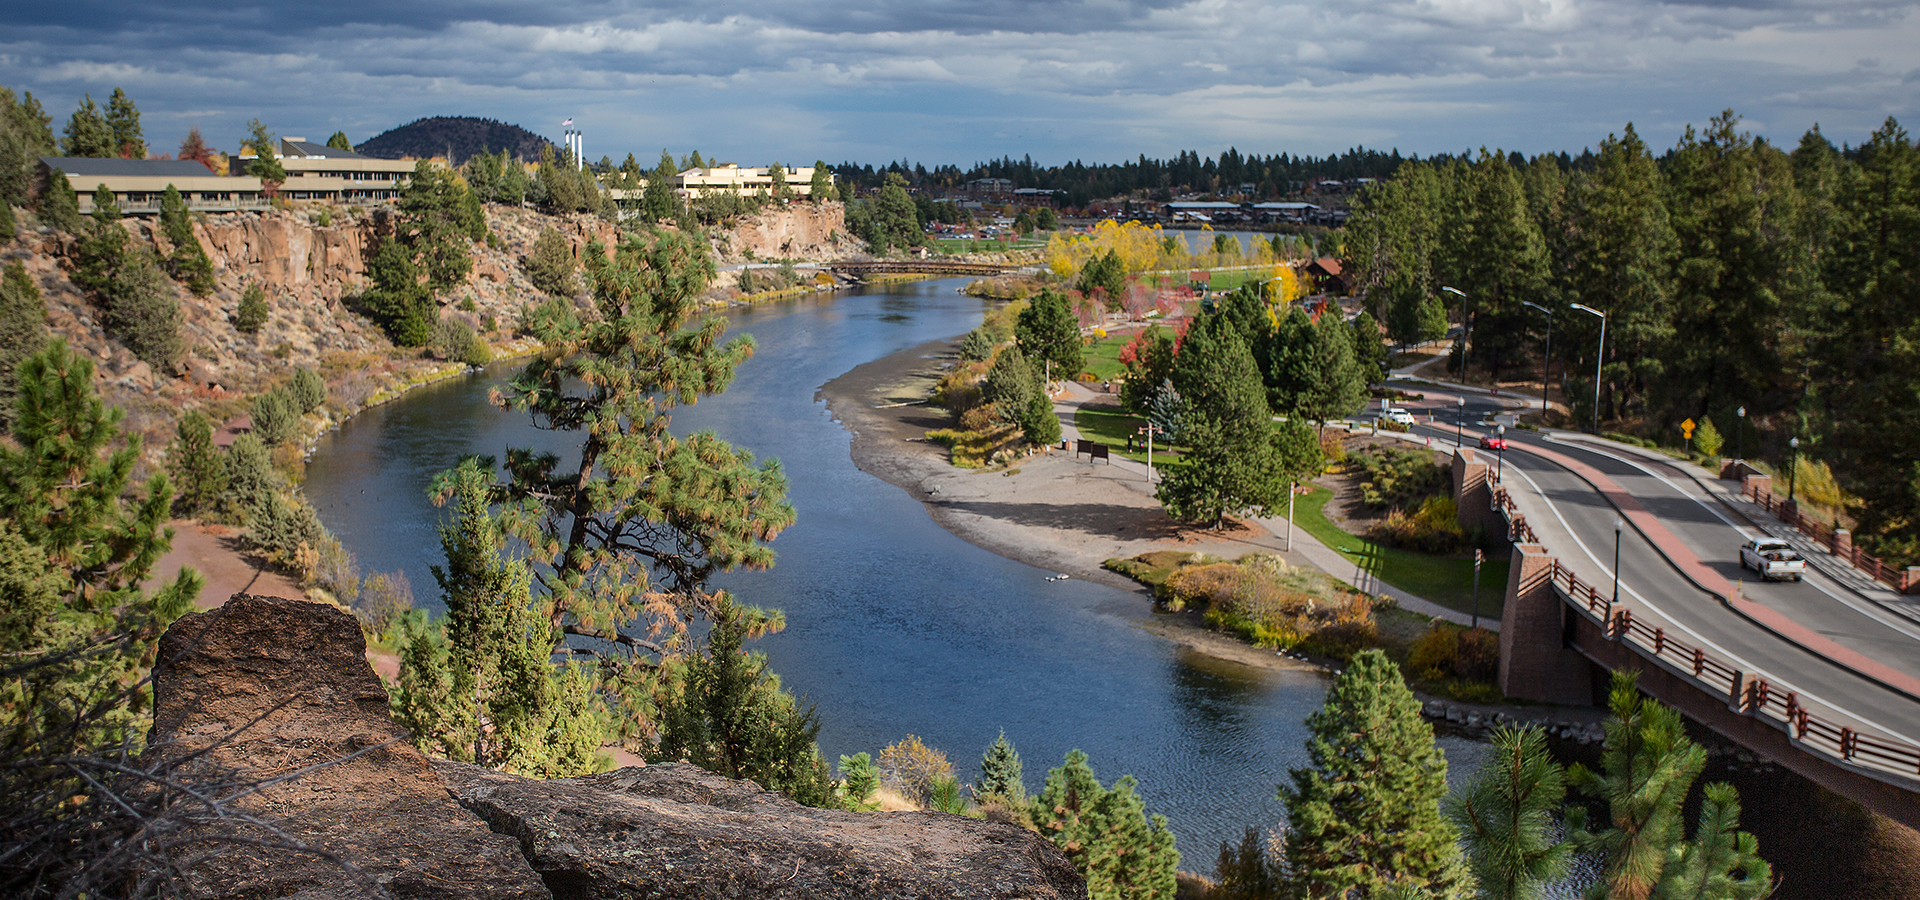 Farewell Bend Park - Bend Park and Recreation District